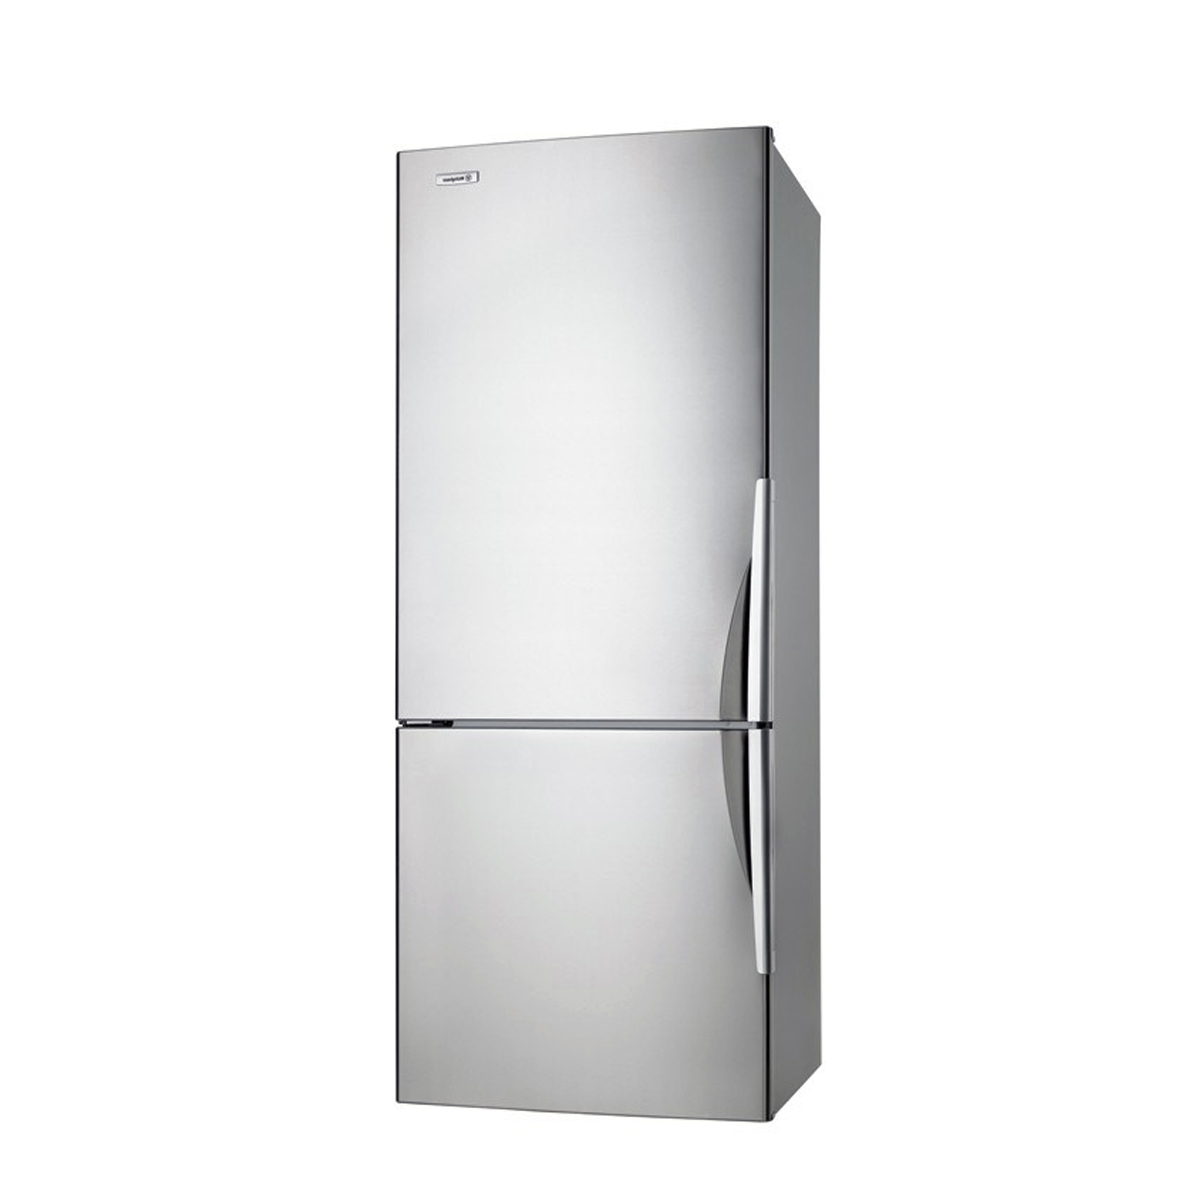 Westinghouse WBE4300SBLH 430L Bottom Mount Fridge